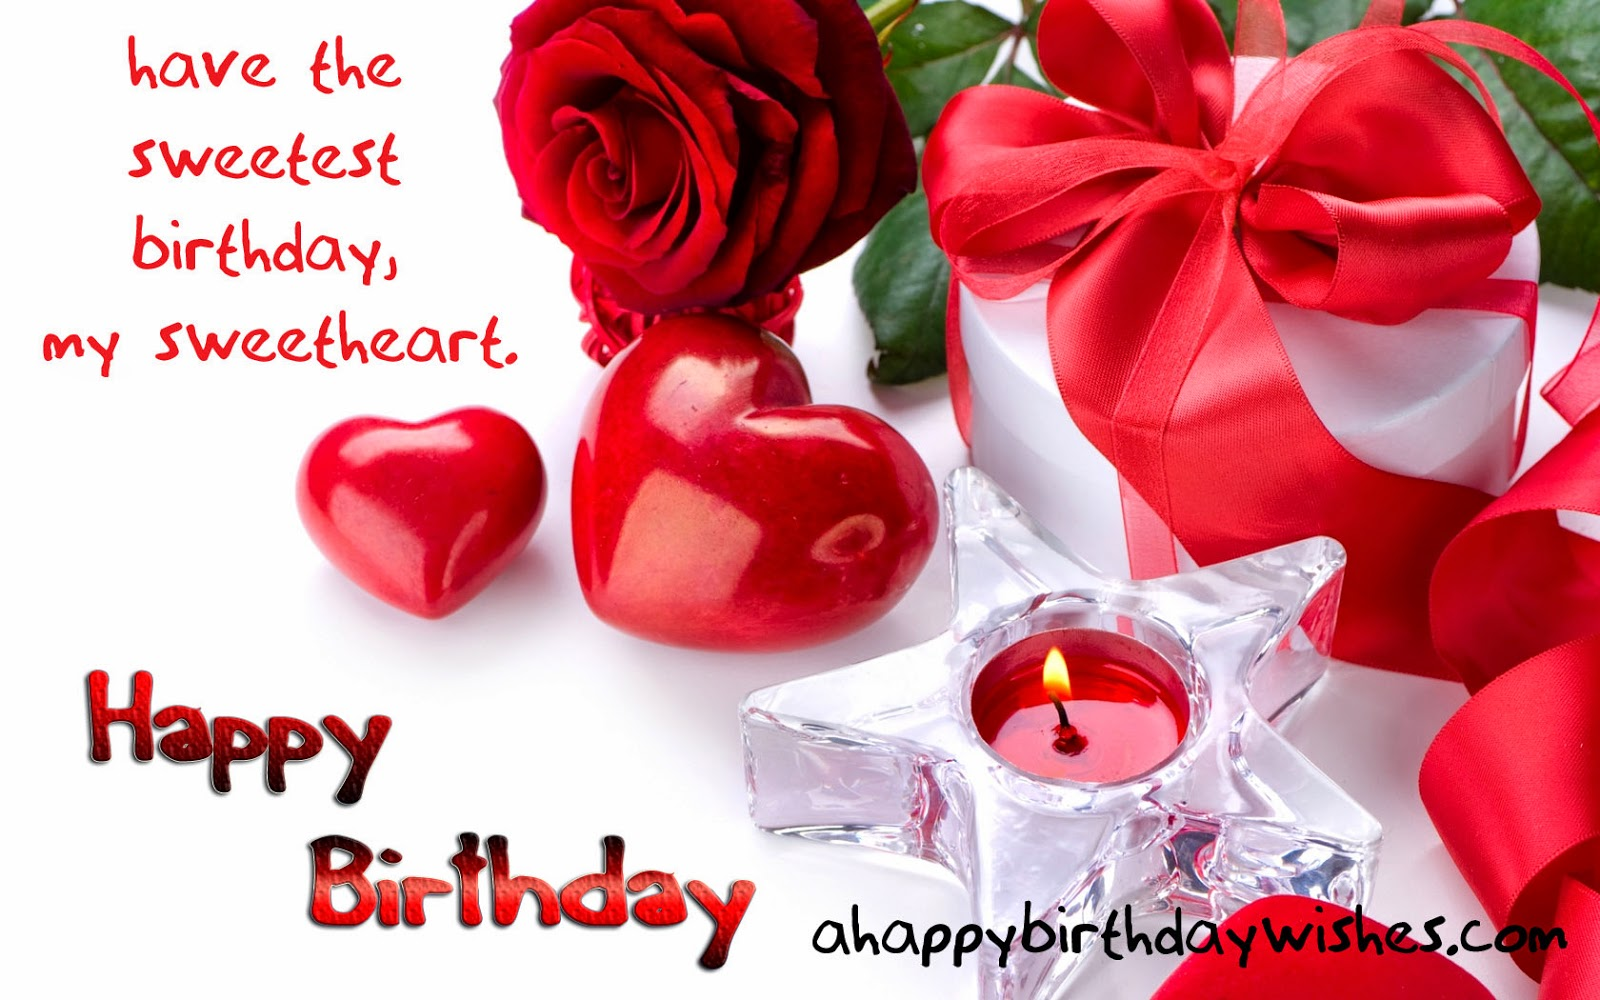 Heartfelt Birthday Wishes That Can Express Your Love to Girlfriend on Her Birthday 1